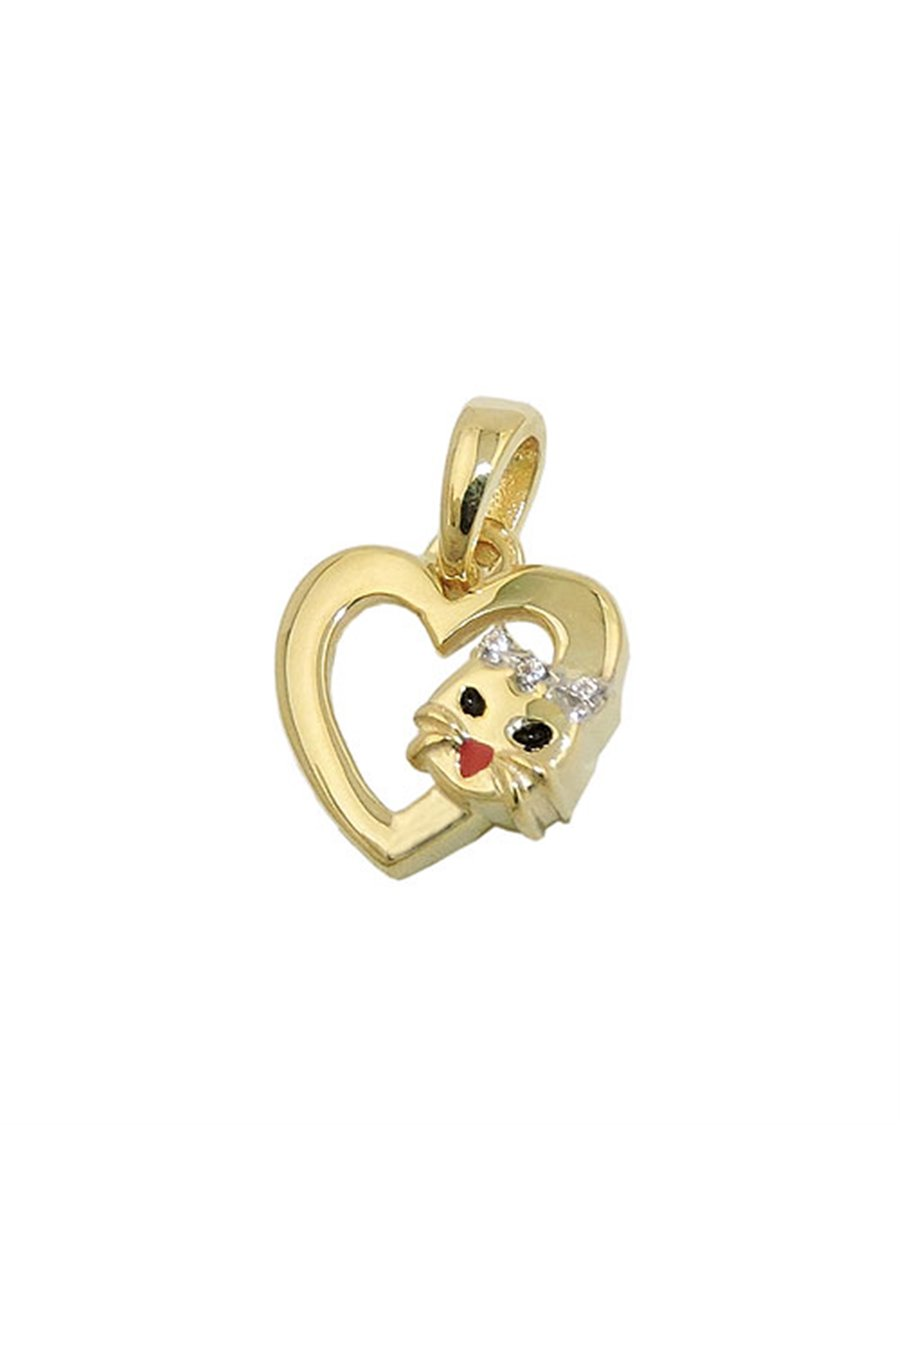 PENDANT HEART WITH CAT HEAD 9K GOLD